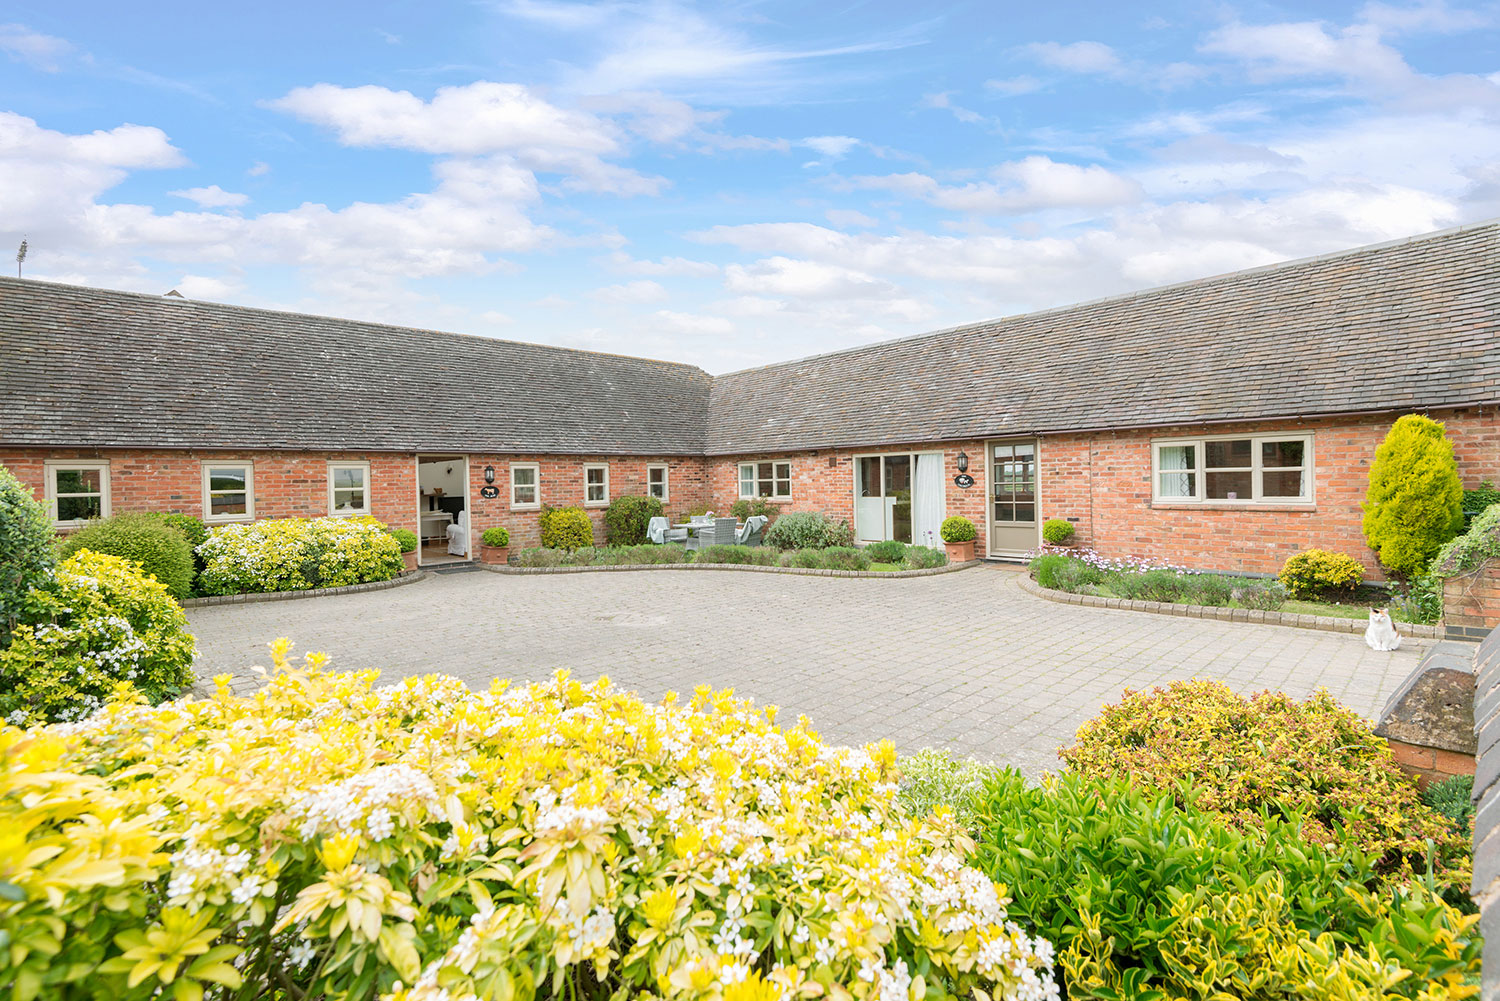 Holiday cottages set around a central courtyard   Upper Rectory Farm Cottages